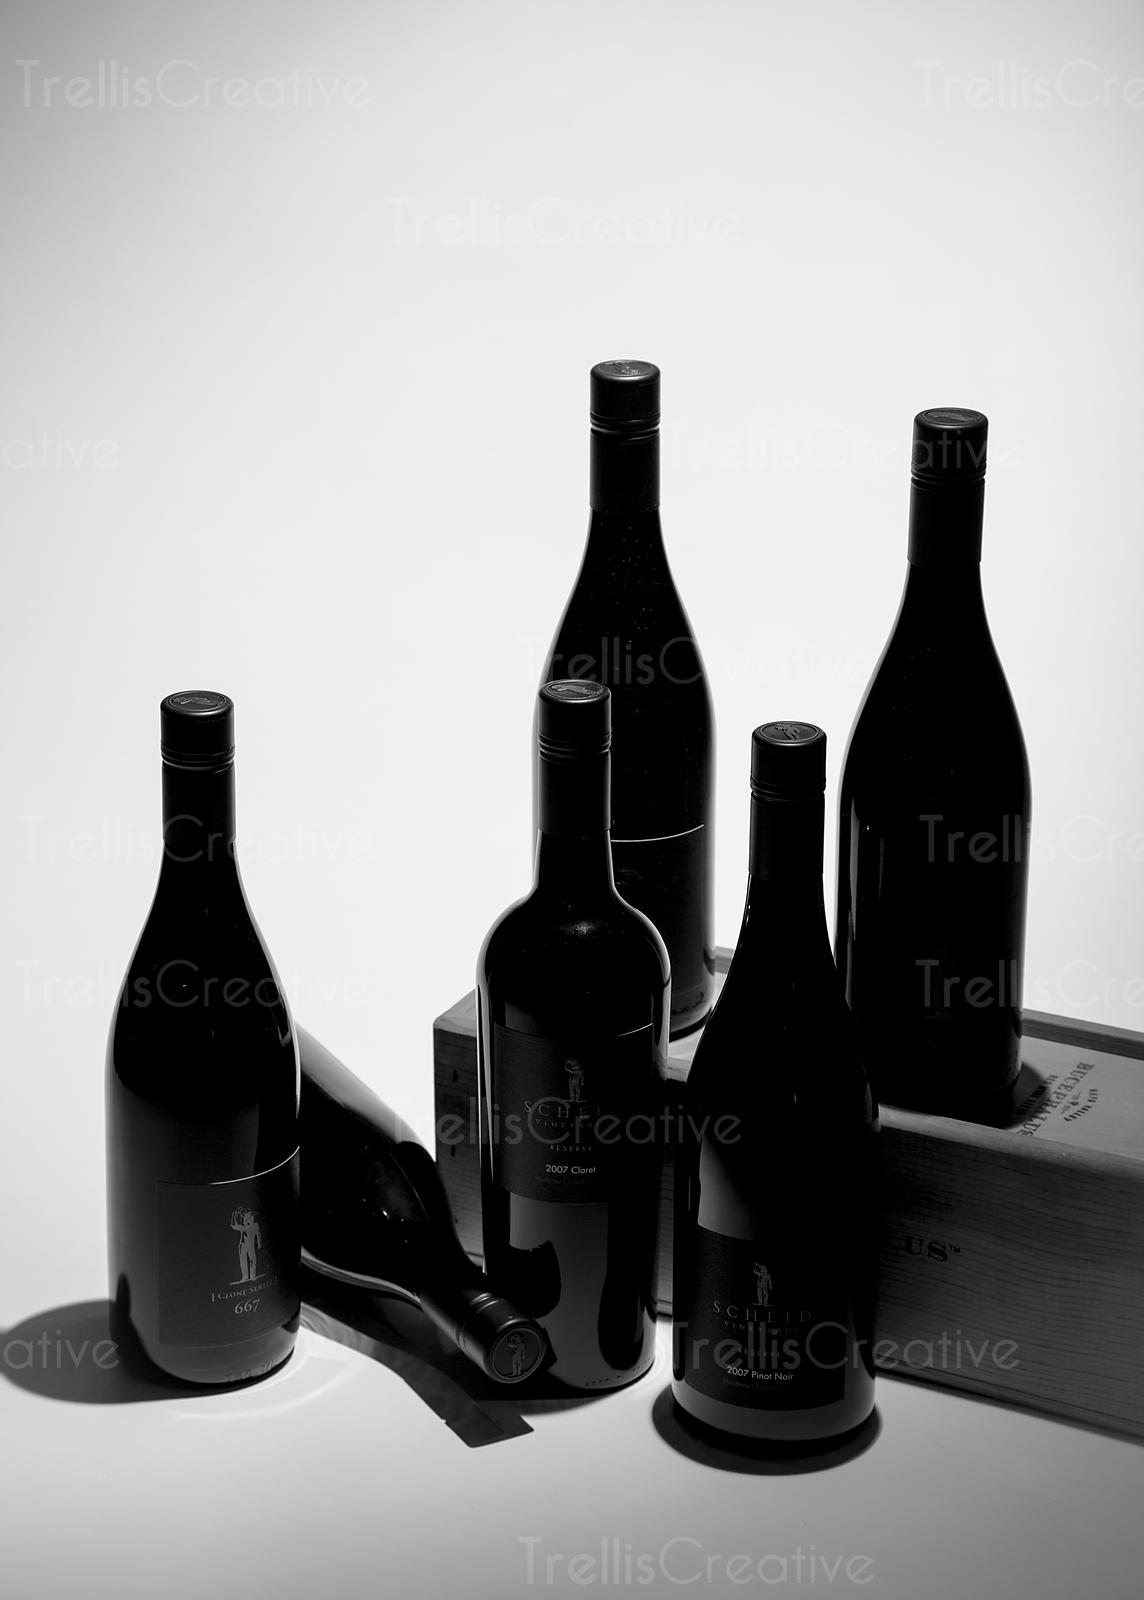 Silhouette of six wine bottles photographed with a wooden box